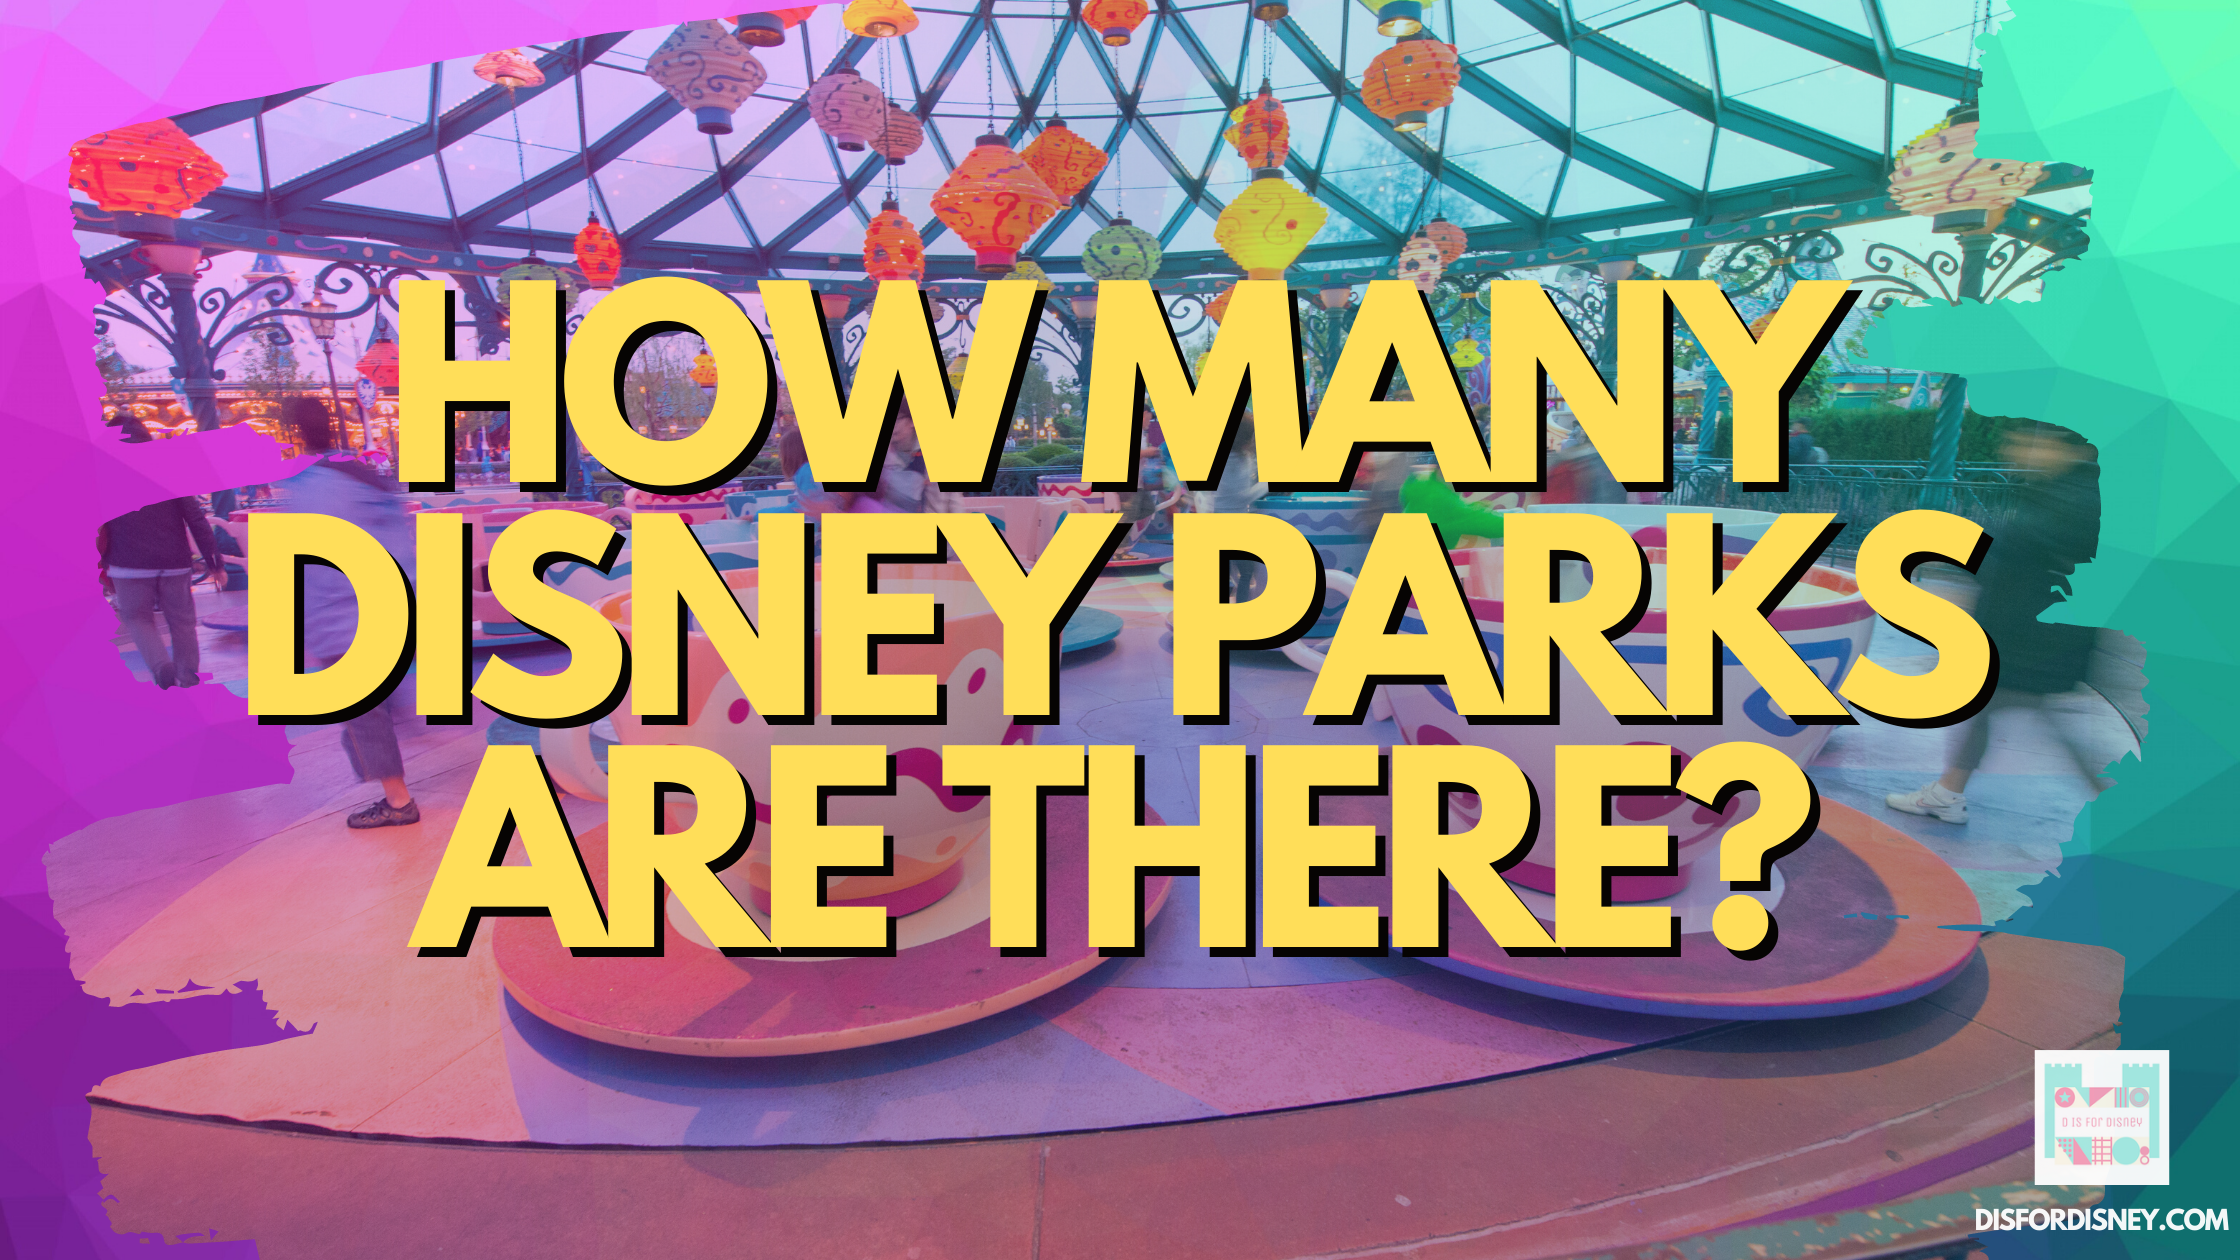 How Many Disney Parks Are There?